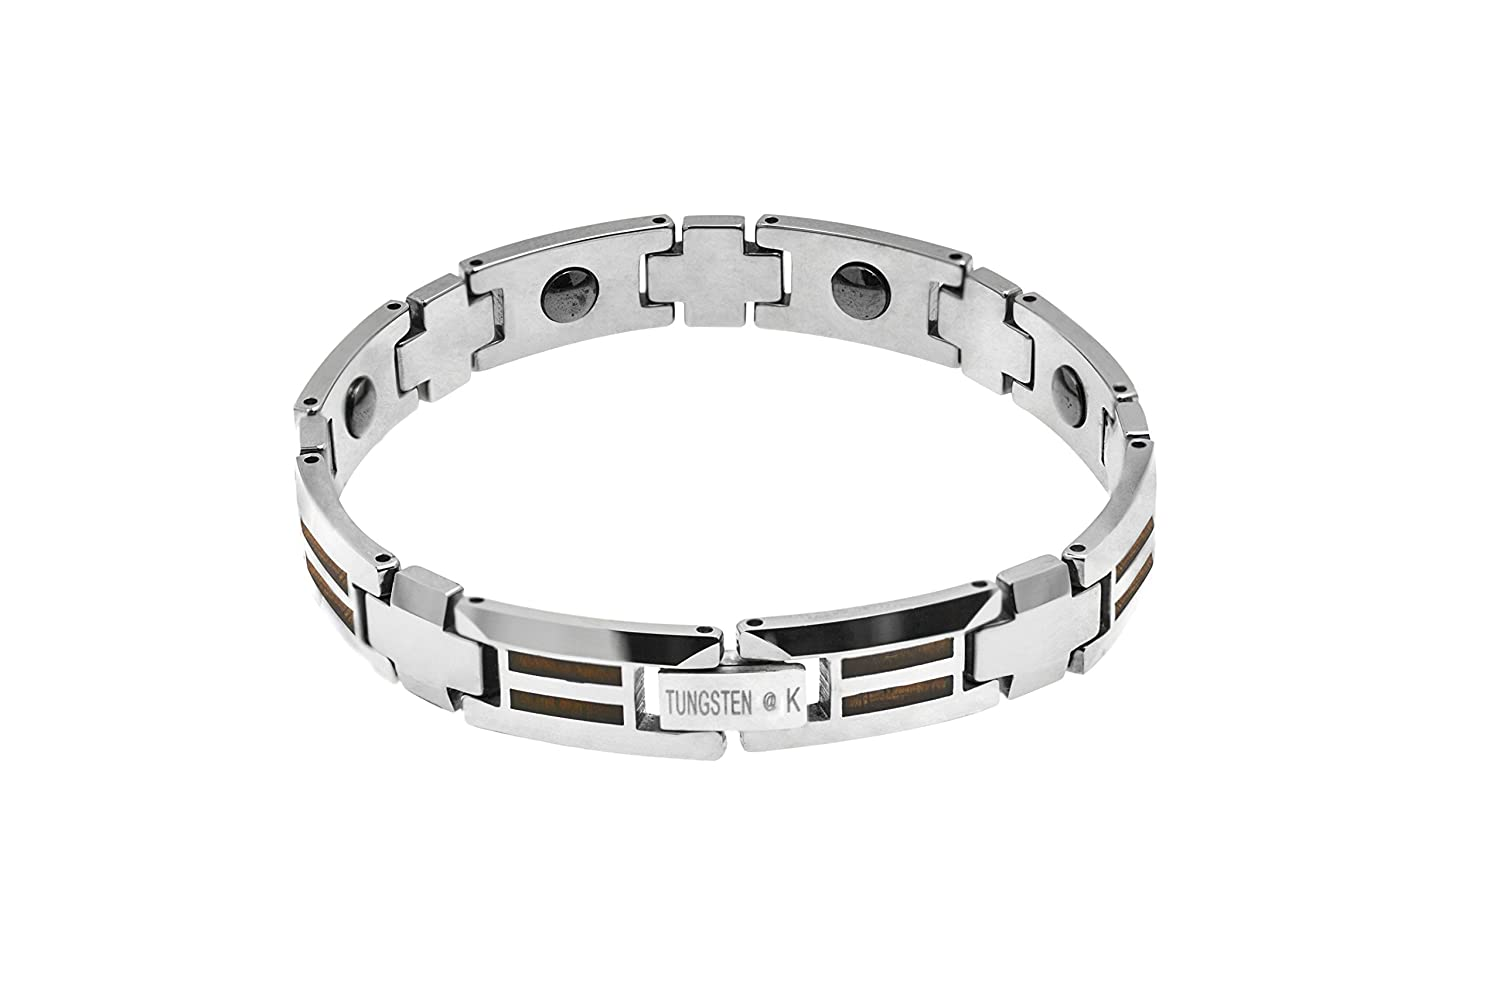 products unleashed gold jewelry tungsten bracelet de niro